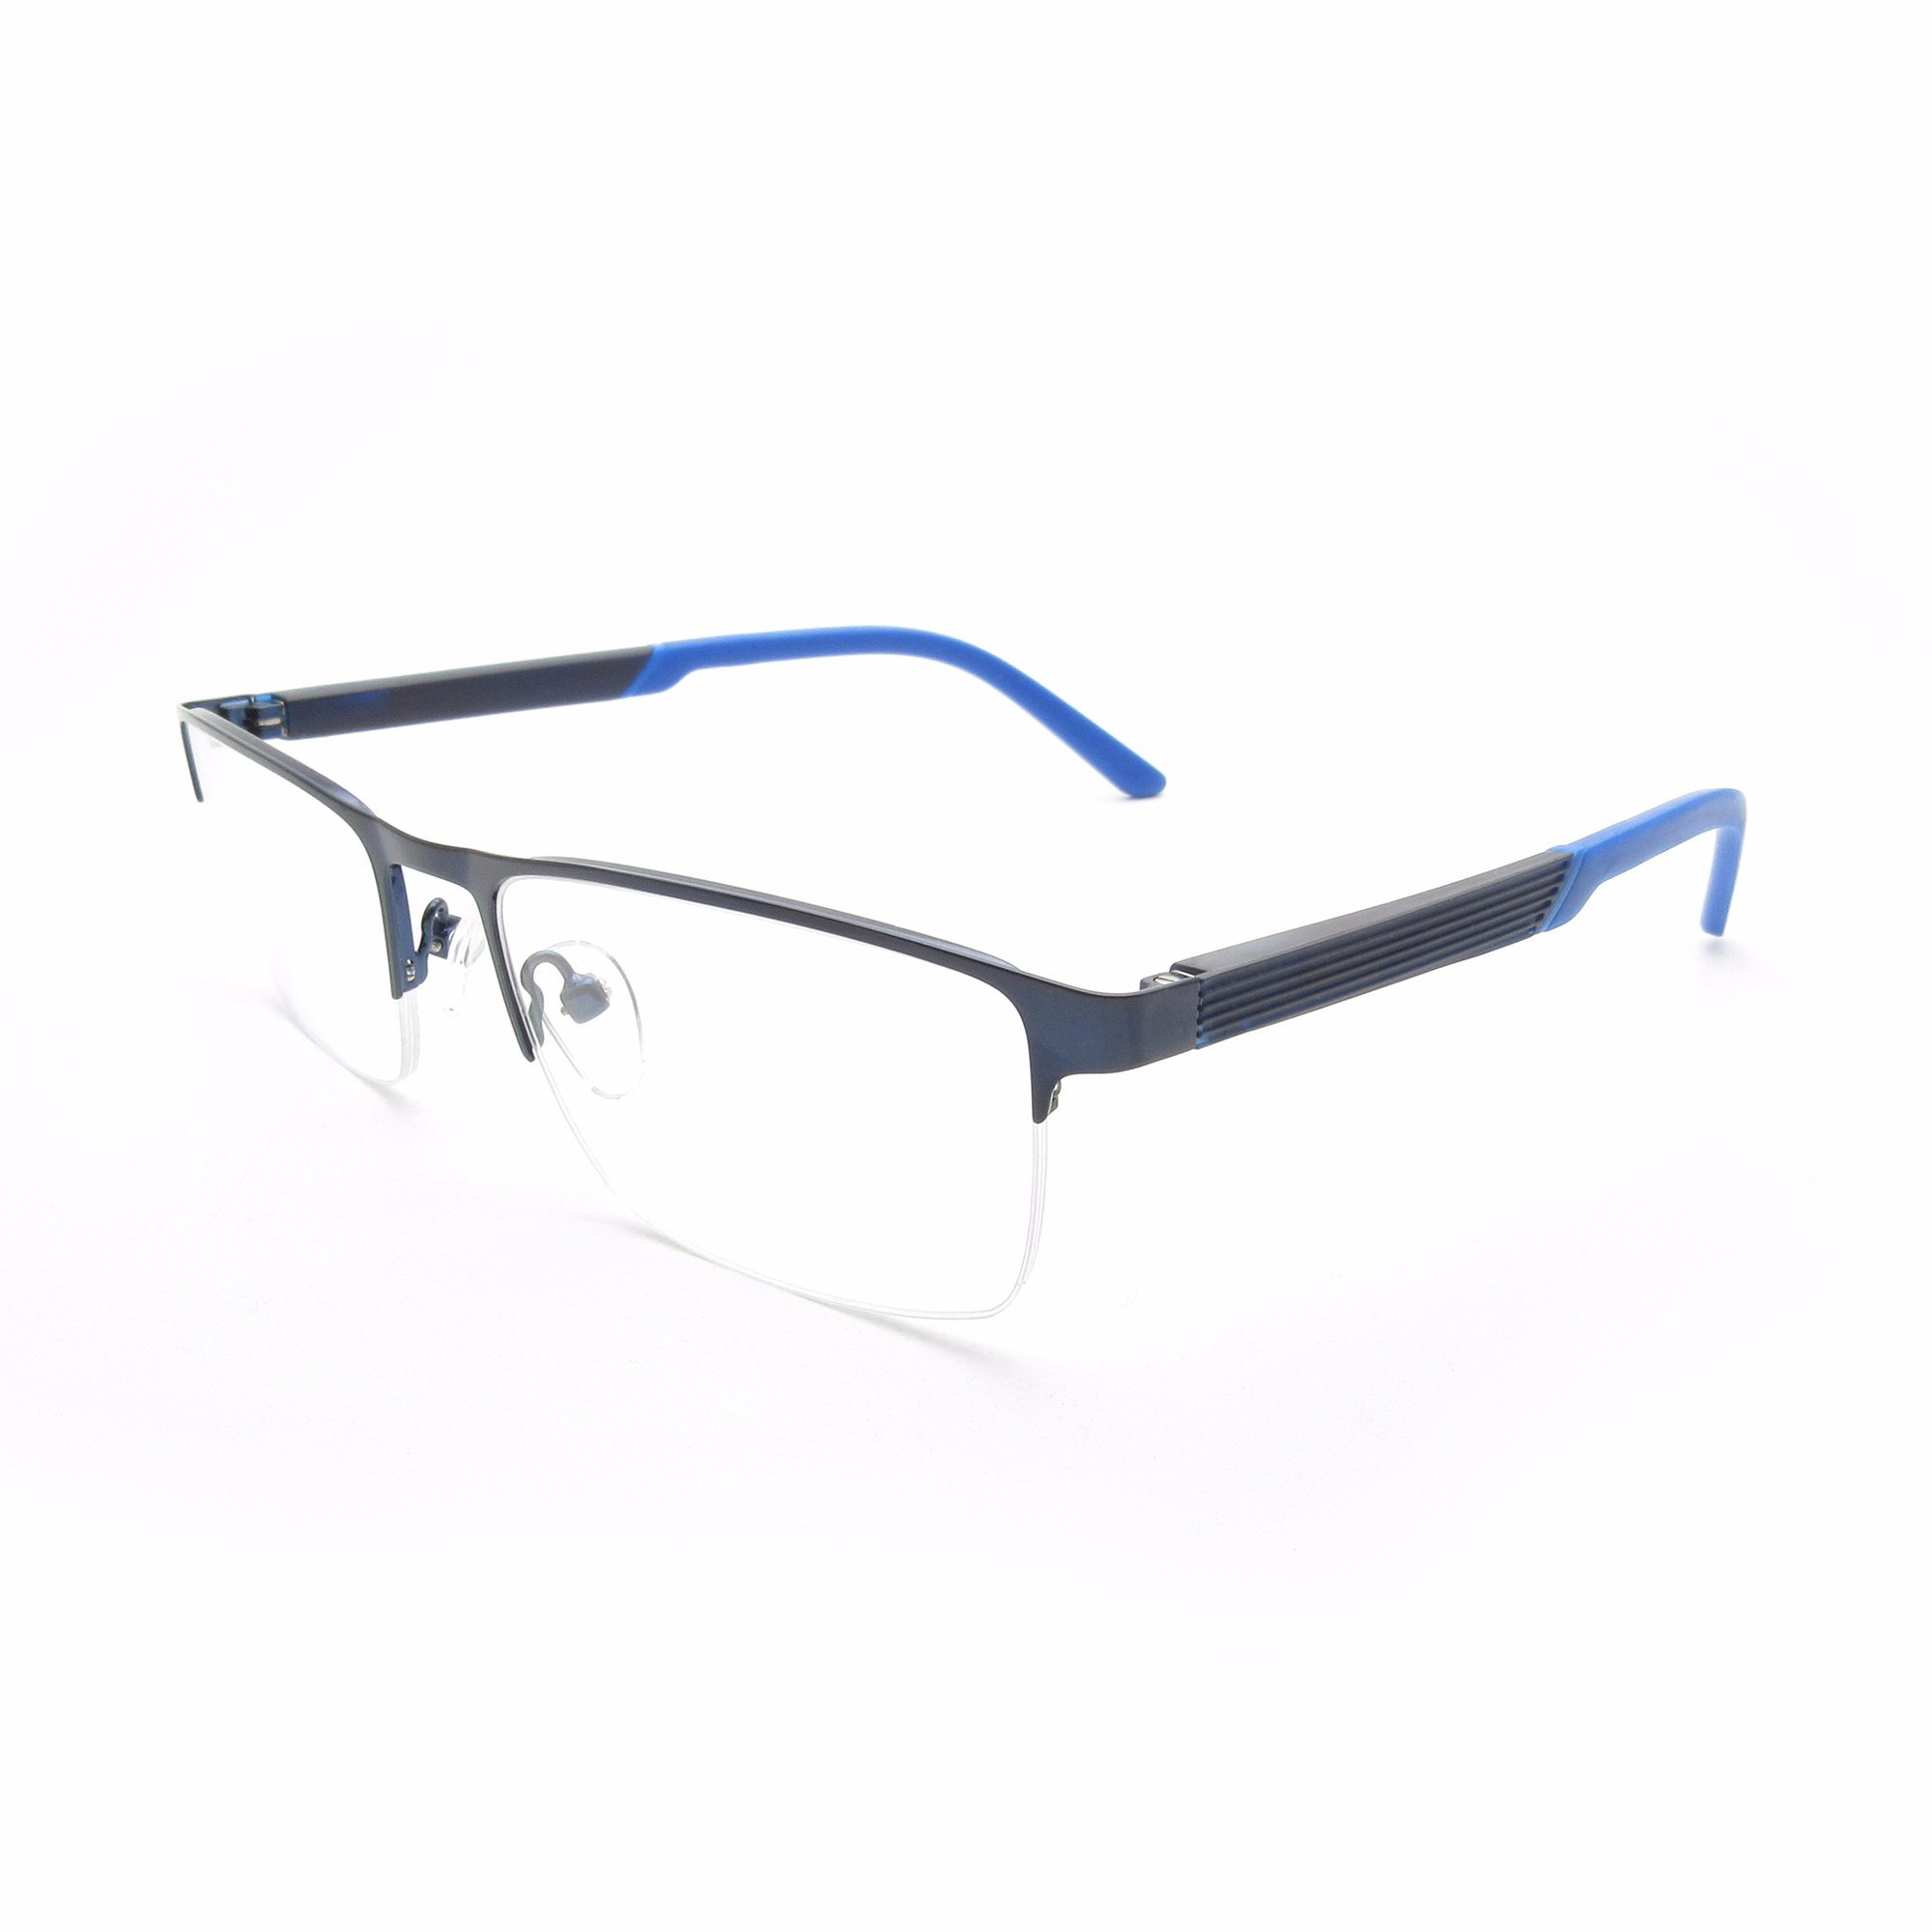 Cheap Price Hq0115 High-End Solid Hinge Fancy Unisex Optical Eyeglasses Frame